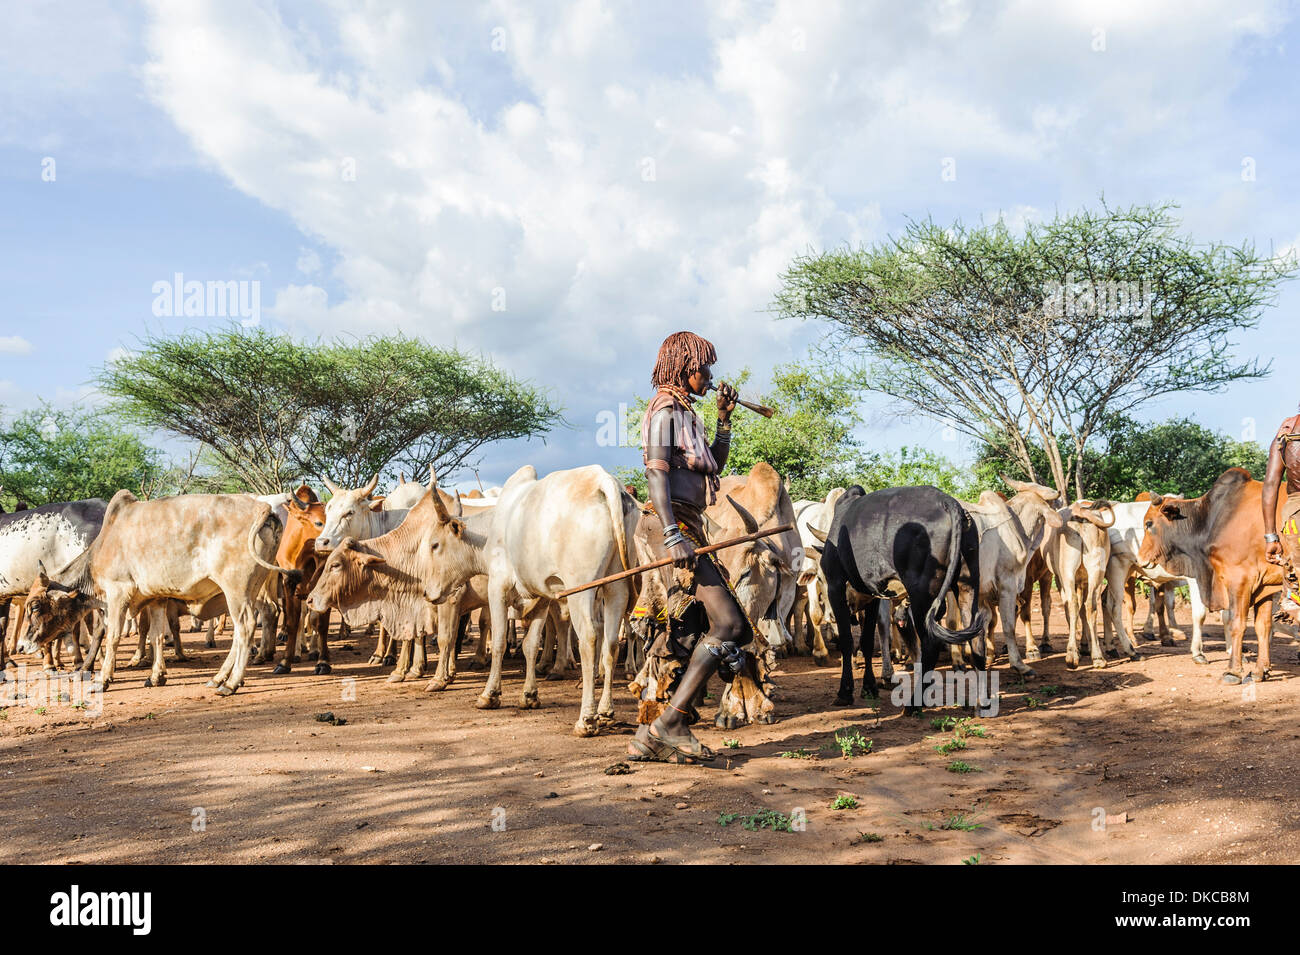 Women dancing around the cattle during a bull jumping ceremony. A rite of passage from boys to men. Hamer tribe, Omo valley, Ethiopia - Stock Image